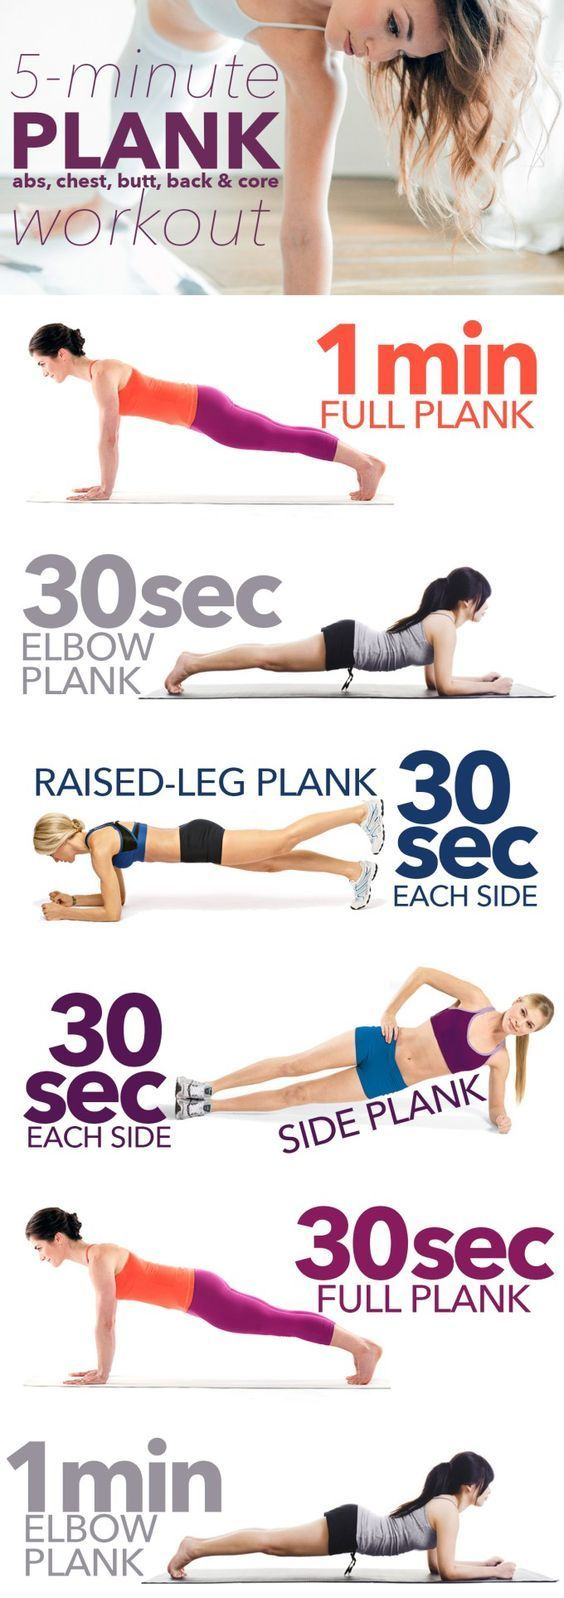 Plank is one of the most effective total-body moves, so here's a five-minute plank for you.